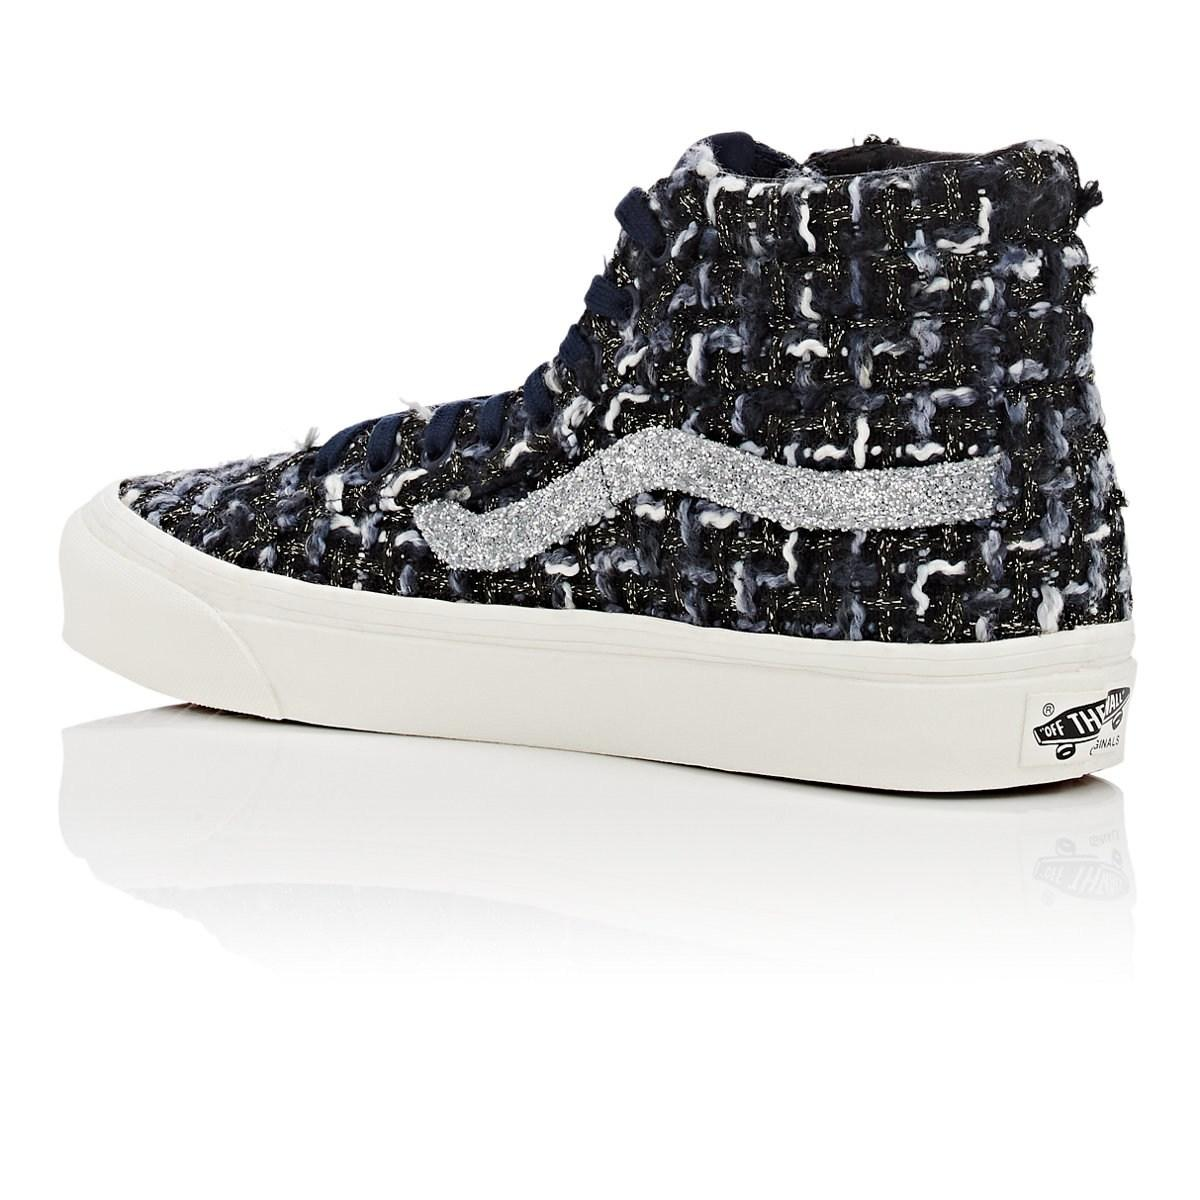 7717c85637 Vans - Blue Og Sk8-hi Lx Tweed Sneakers - Lyst. View fullscreen